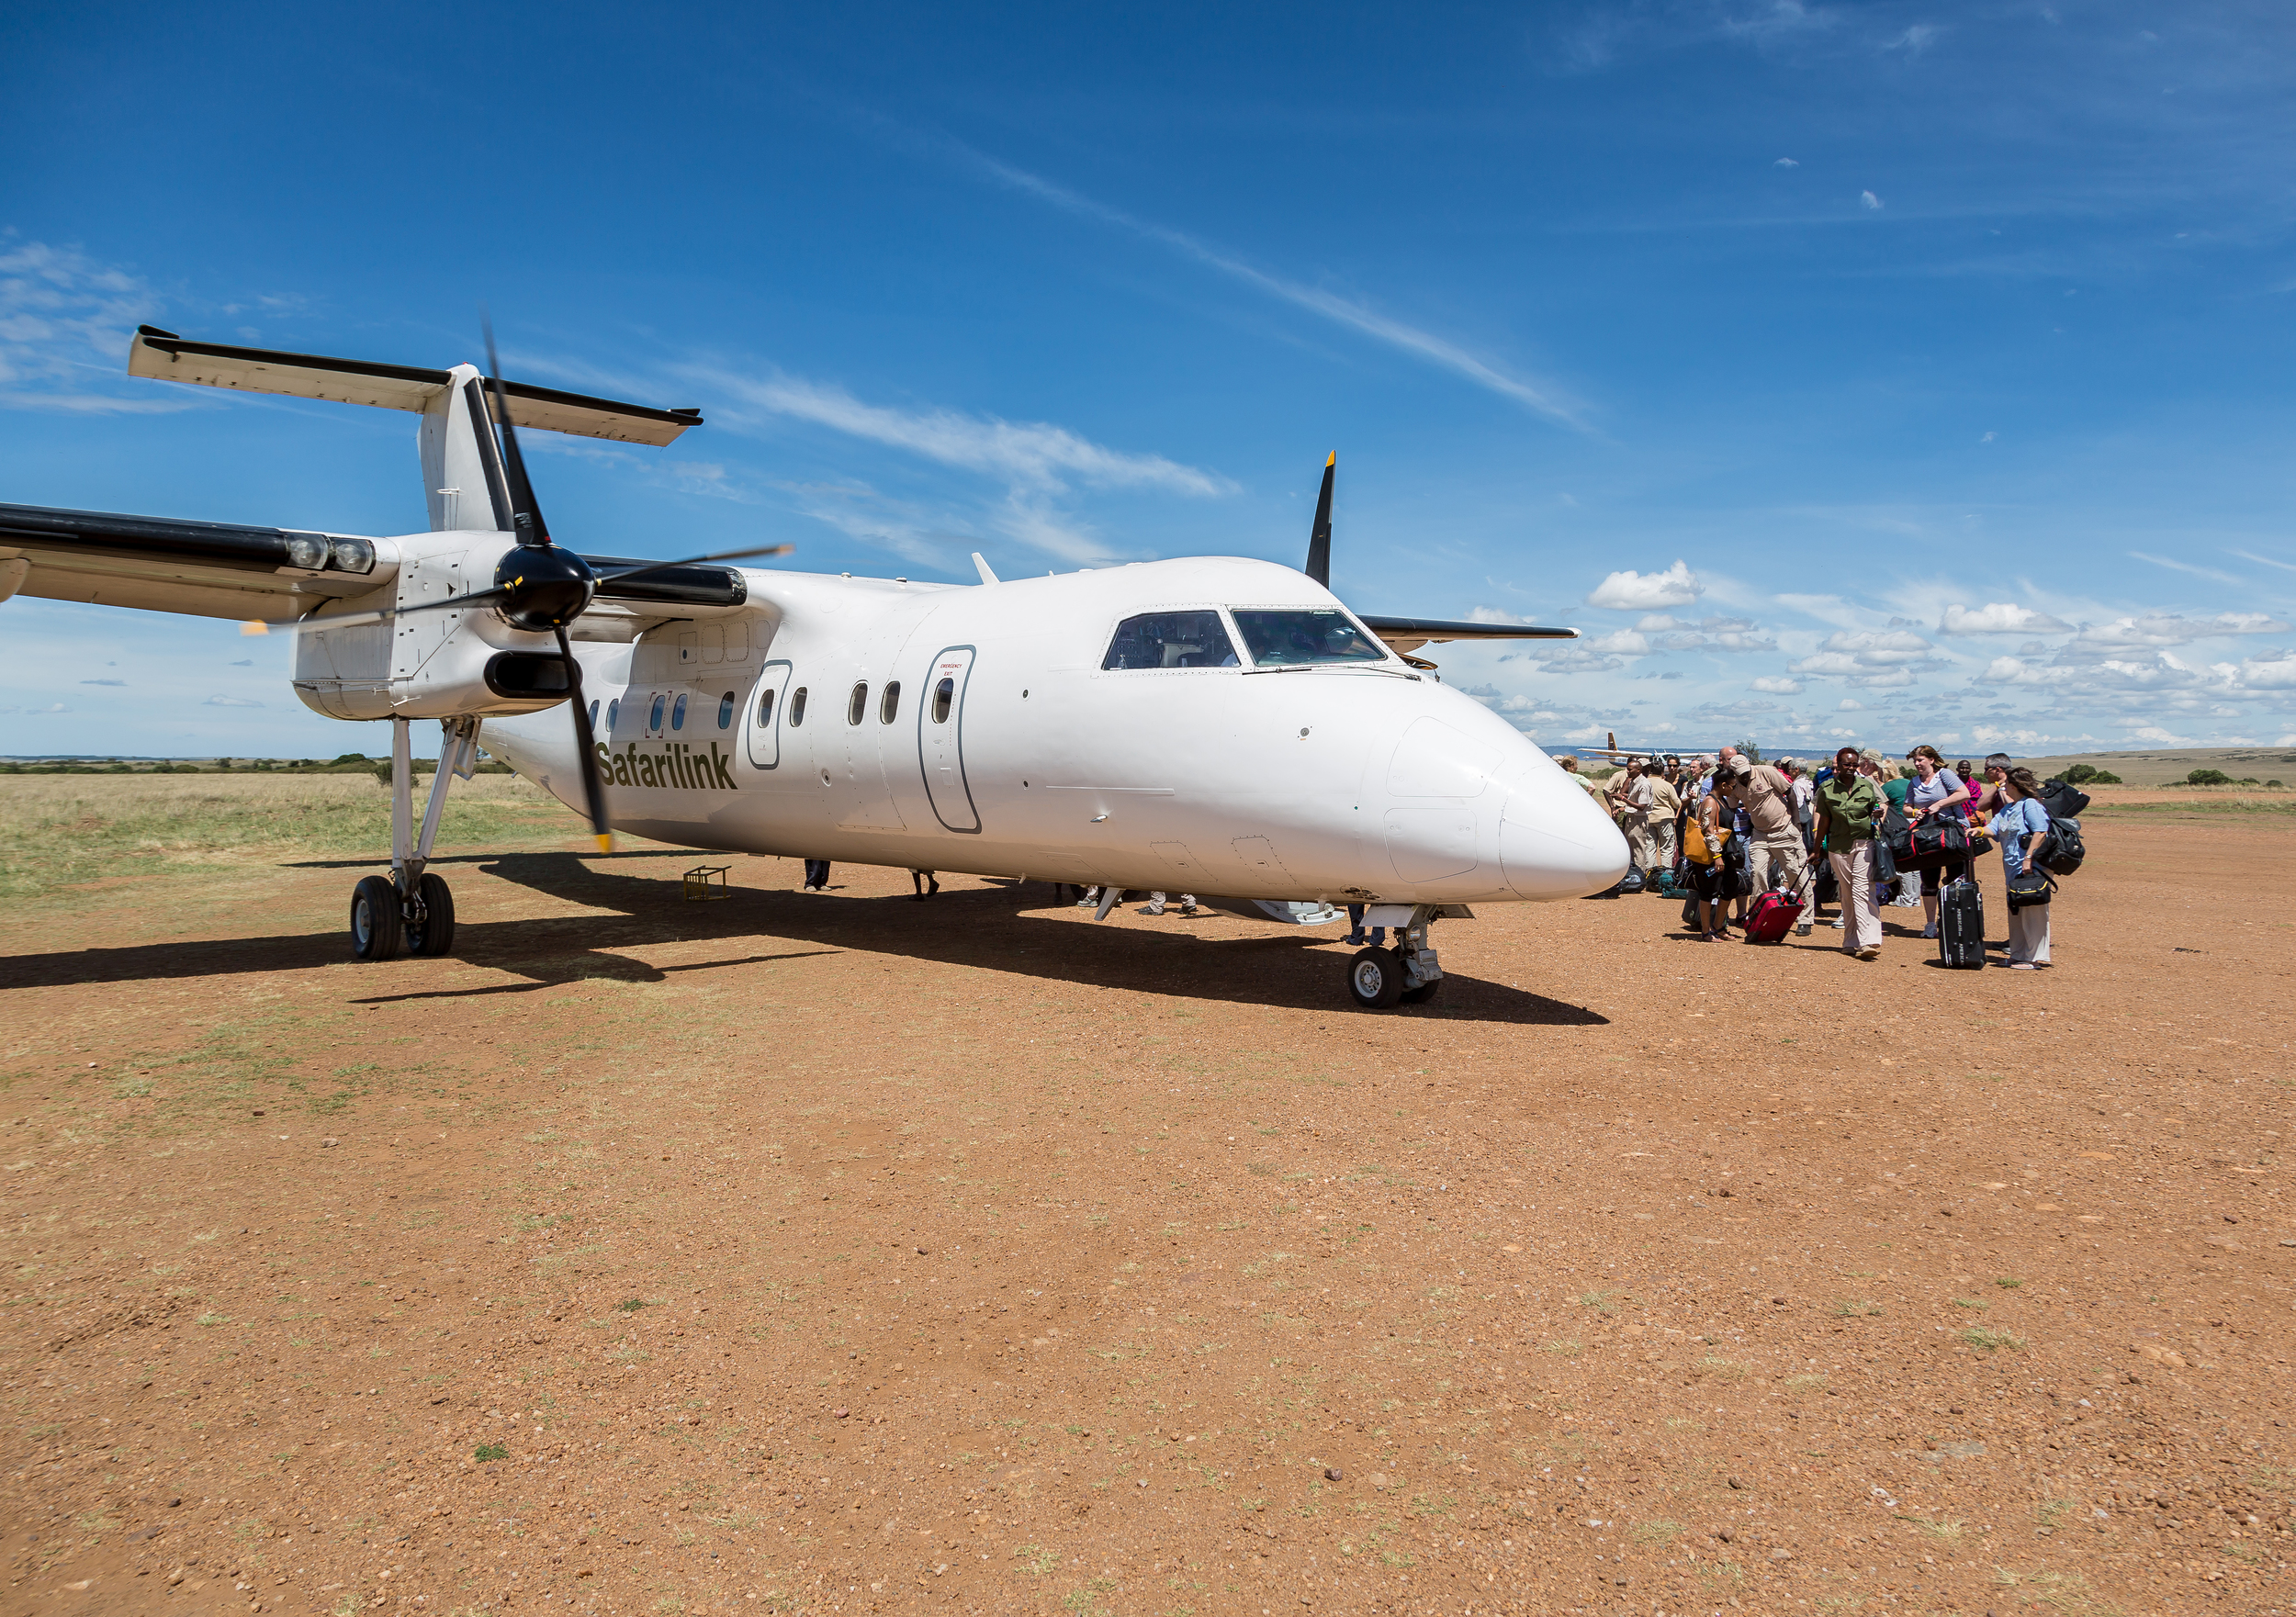 A typical example of Africa's short range air service.